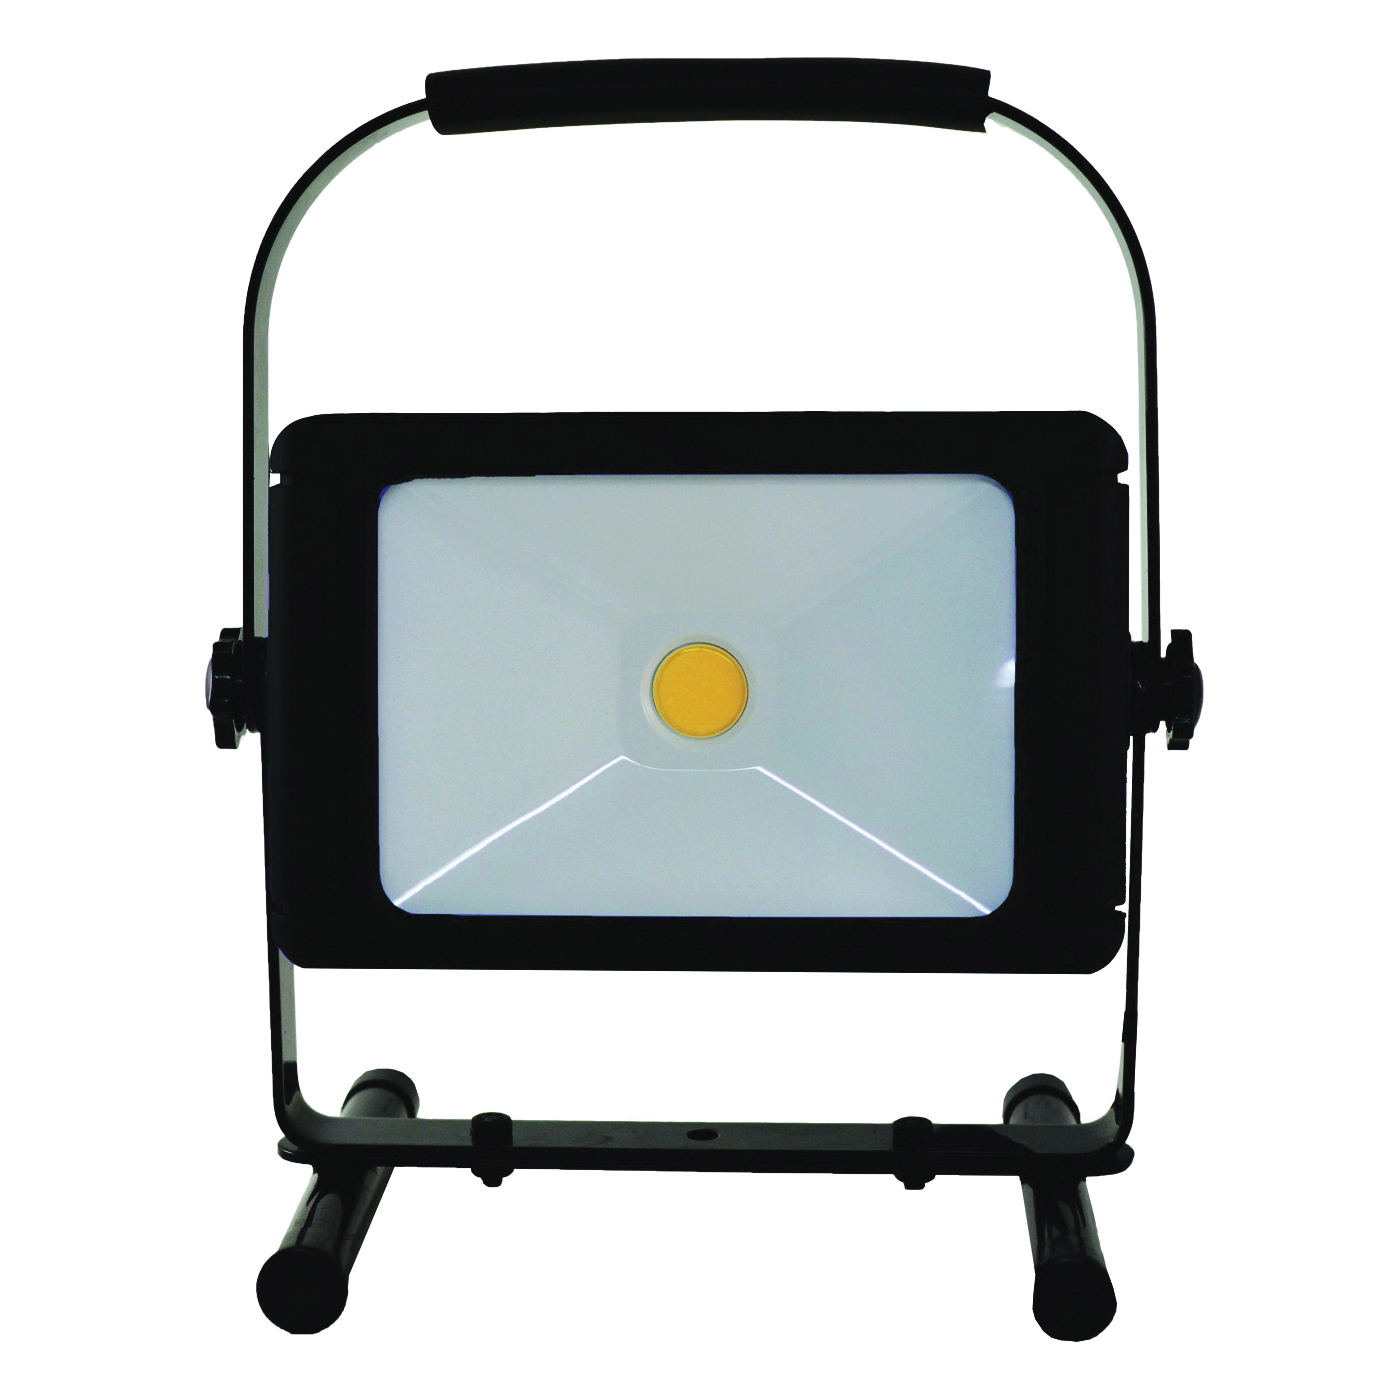 Picture of PowerZone O-D4000H-U Work Light, 42 W, LED Lamp, 4000 Lumens, Black